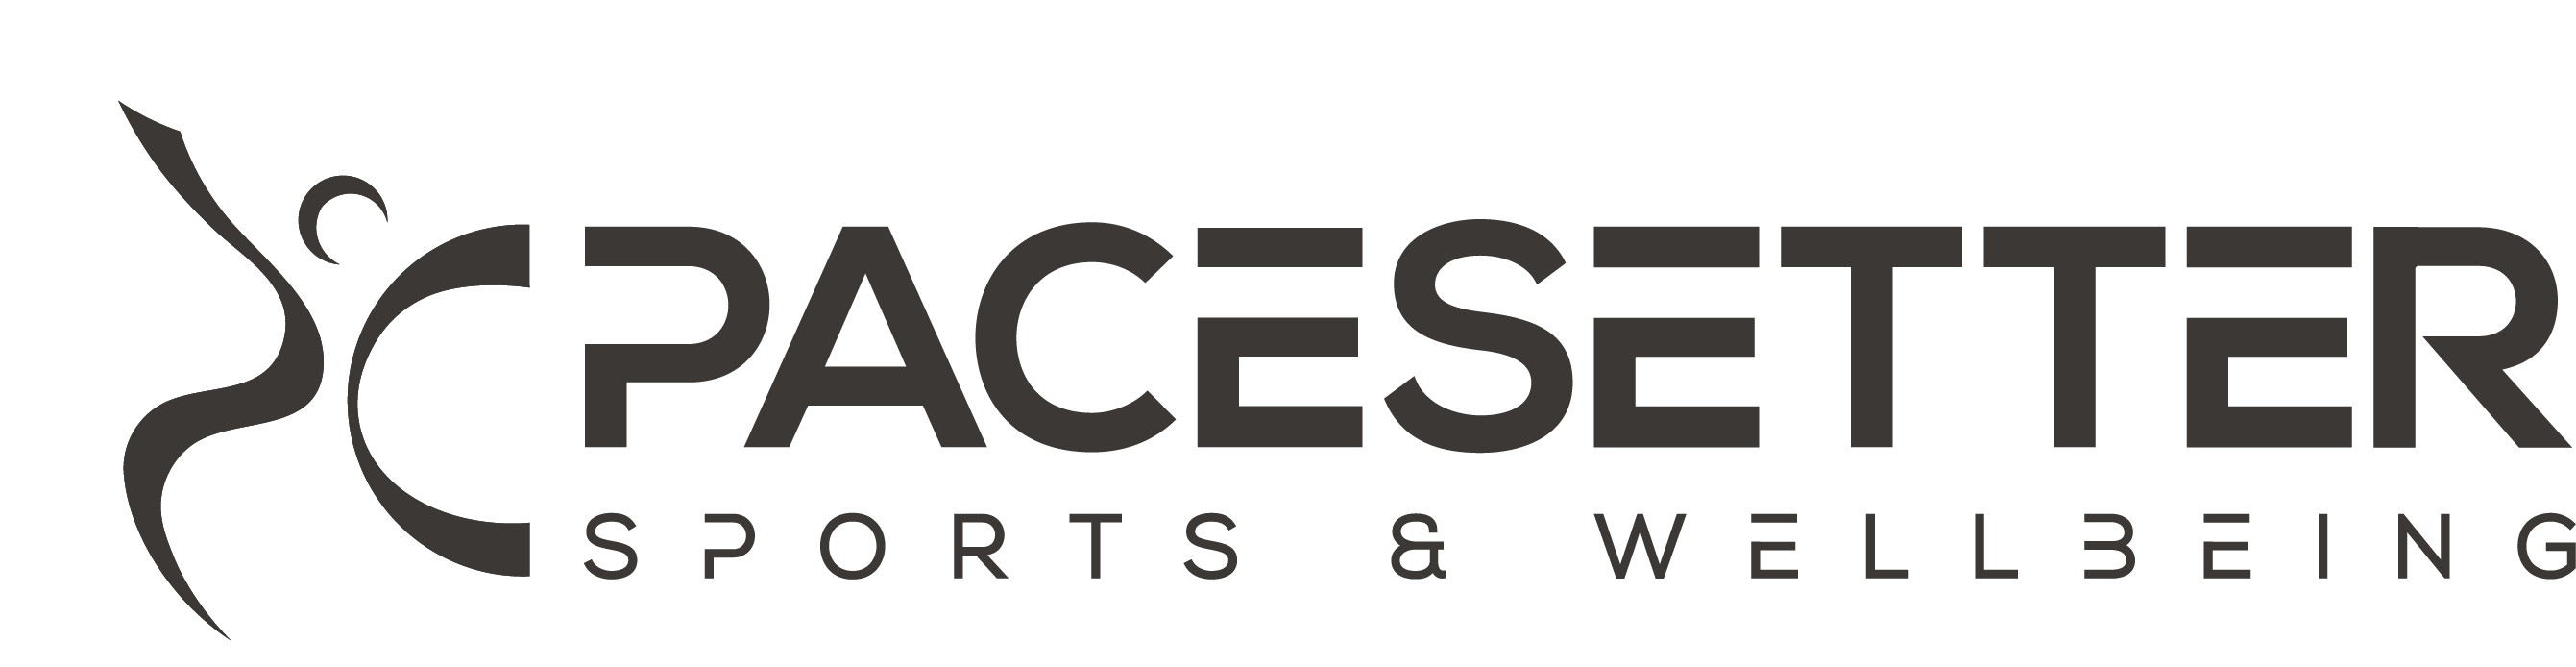 Pacesetter Sports & Wellbeing Limited